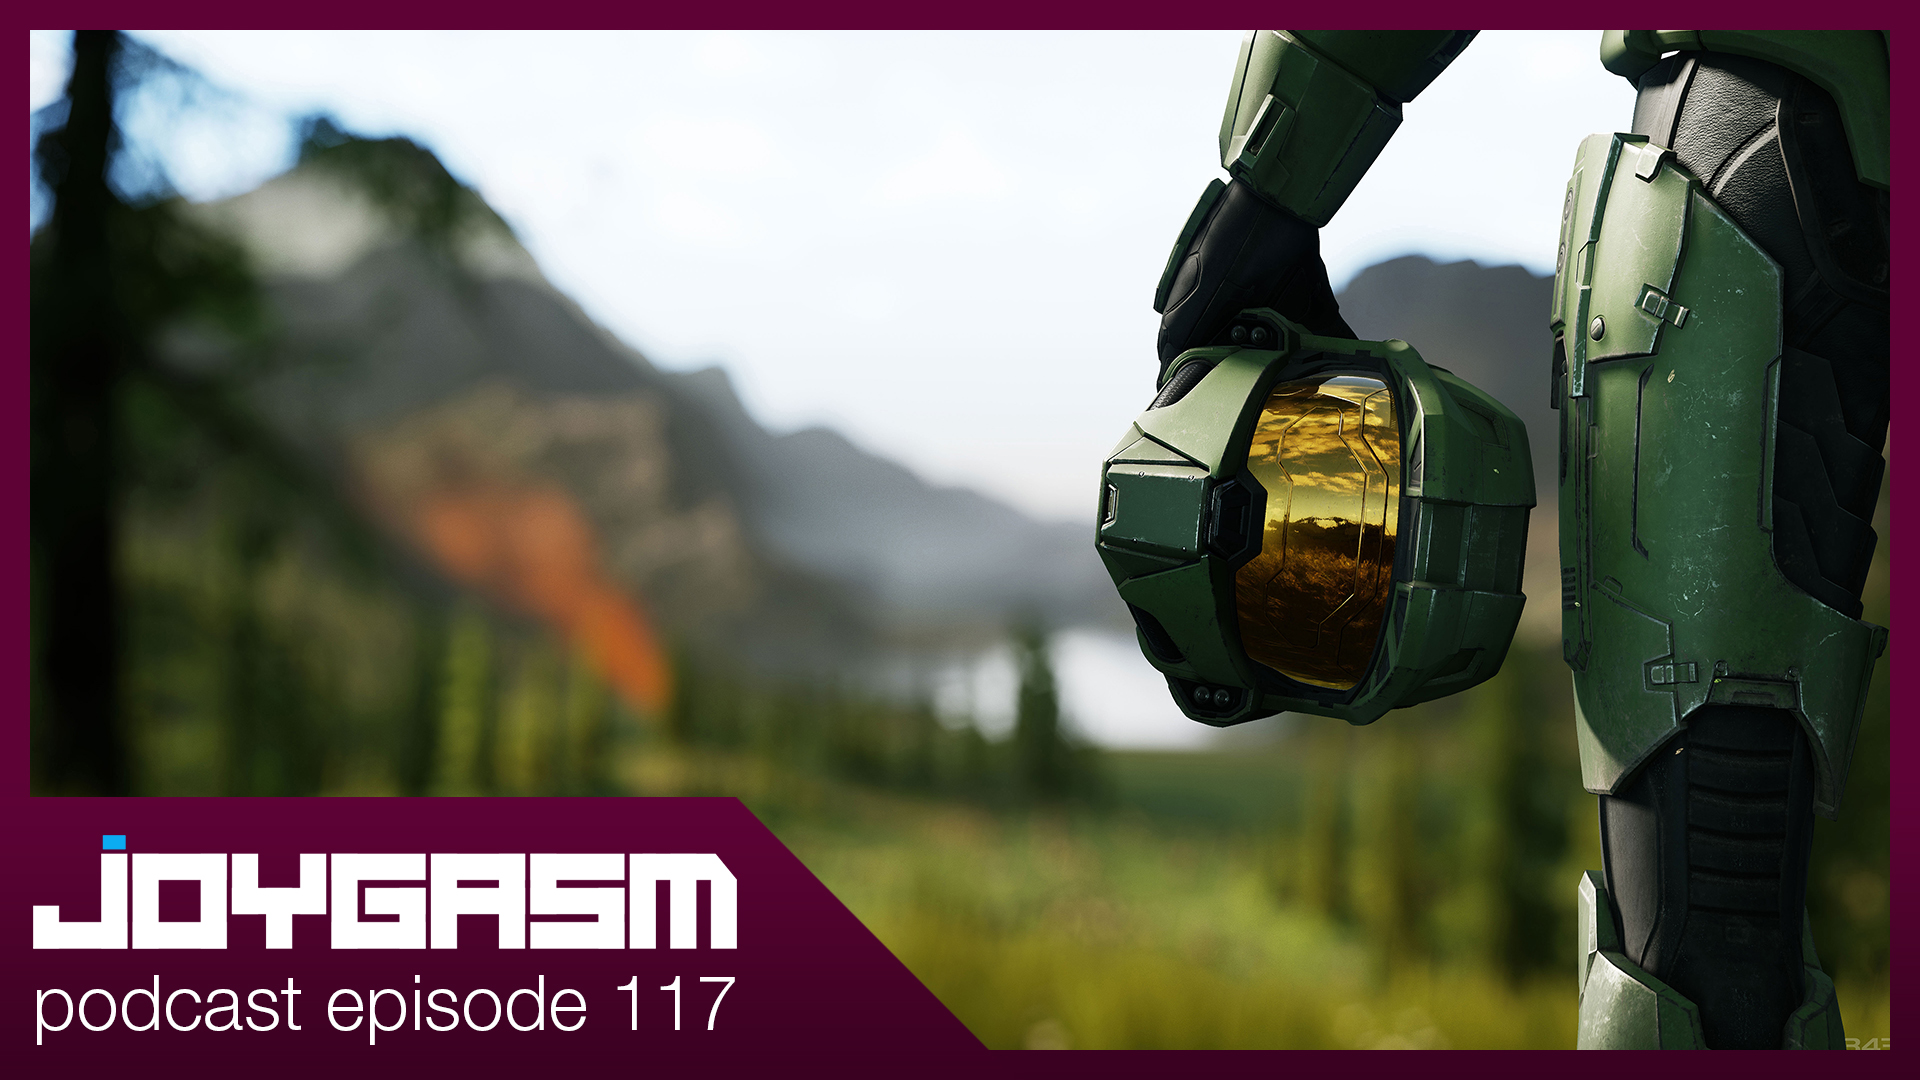 Ep. 117: Halo Memoirs, Star Wars The Rise Of Skywalker Trailer, & More